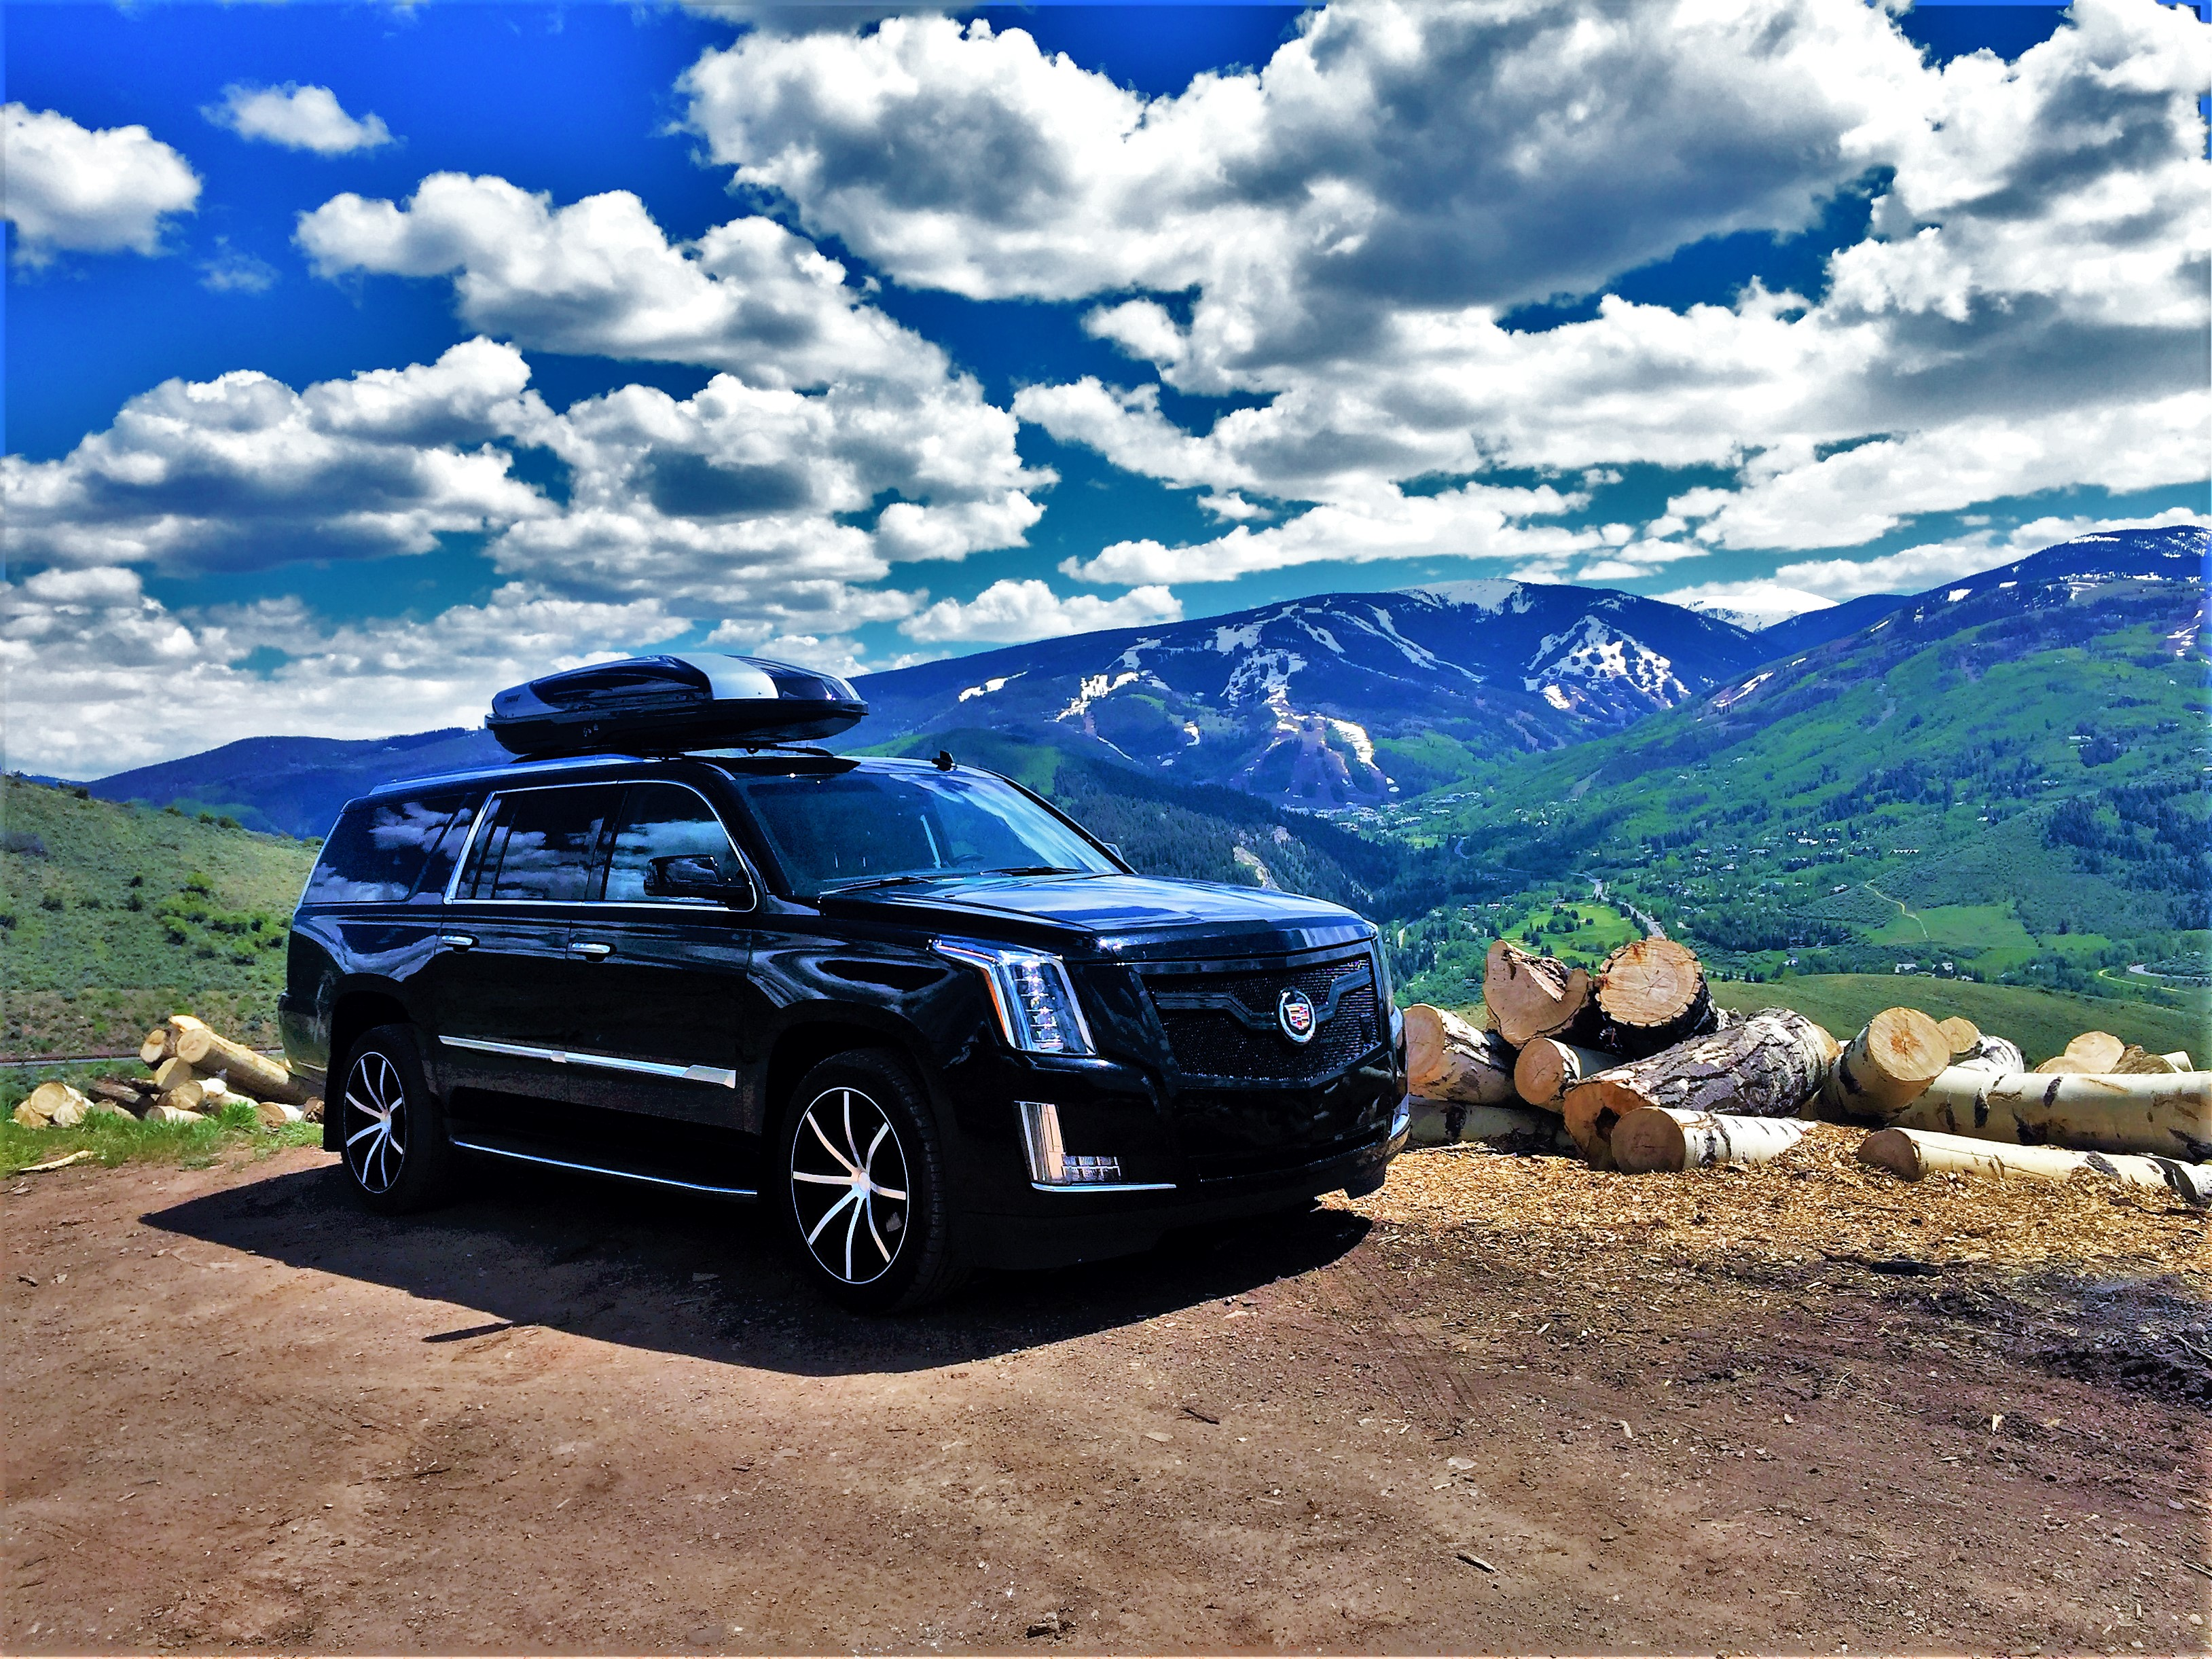 cadillac jpg escalade commons pickup wikimedia wiki dashboard truck ext file